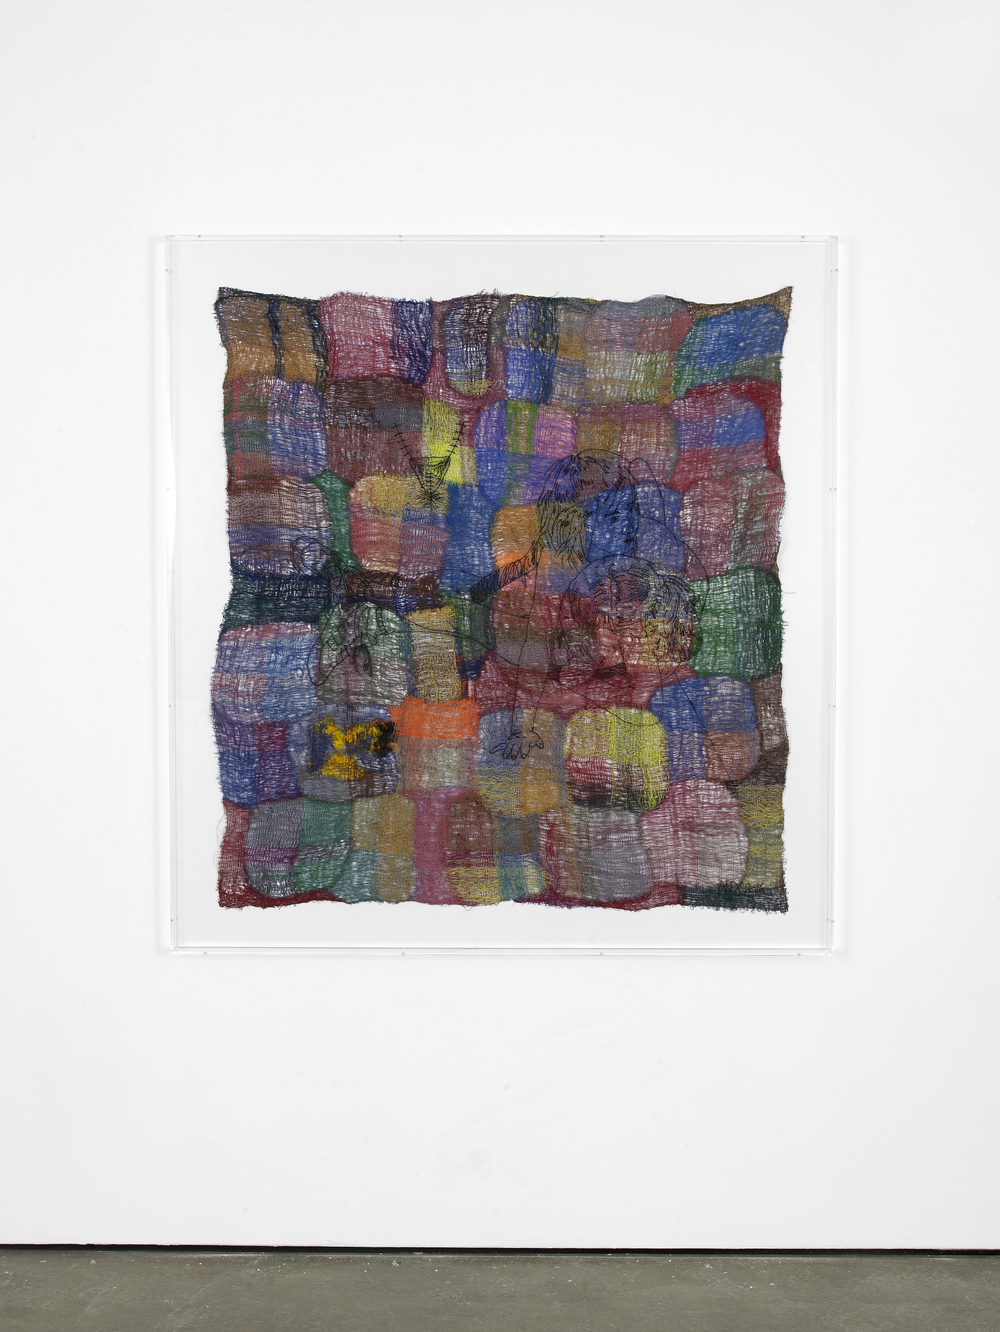 Rupture 2016 Polyester, wool, viscose 140 x 128 cm / 55.1 x 50.3 in 158.2 x 146.2 x 7 cm / 62.2 x 57.5 x 2.7 in (framed)